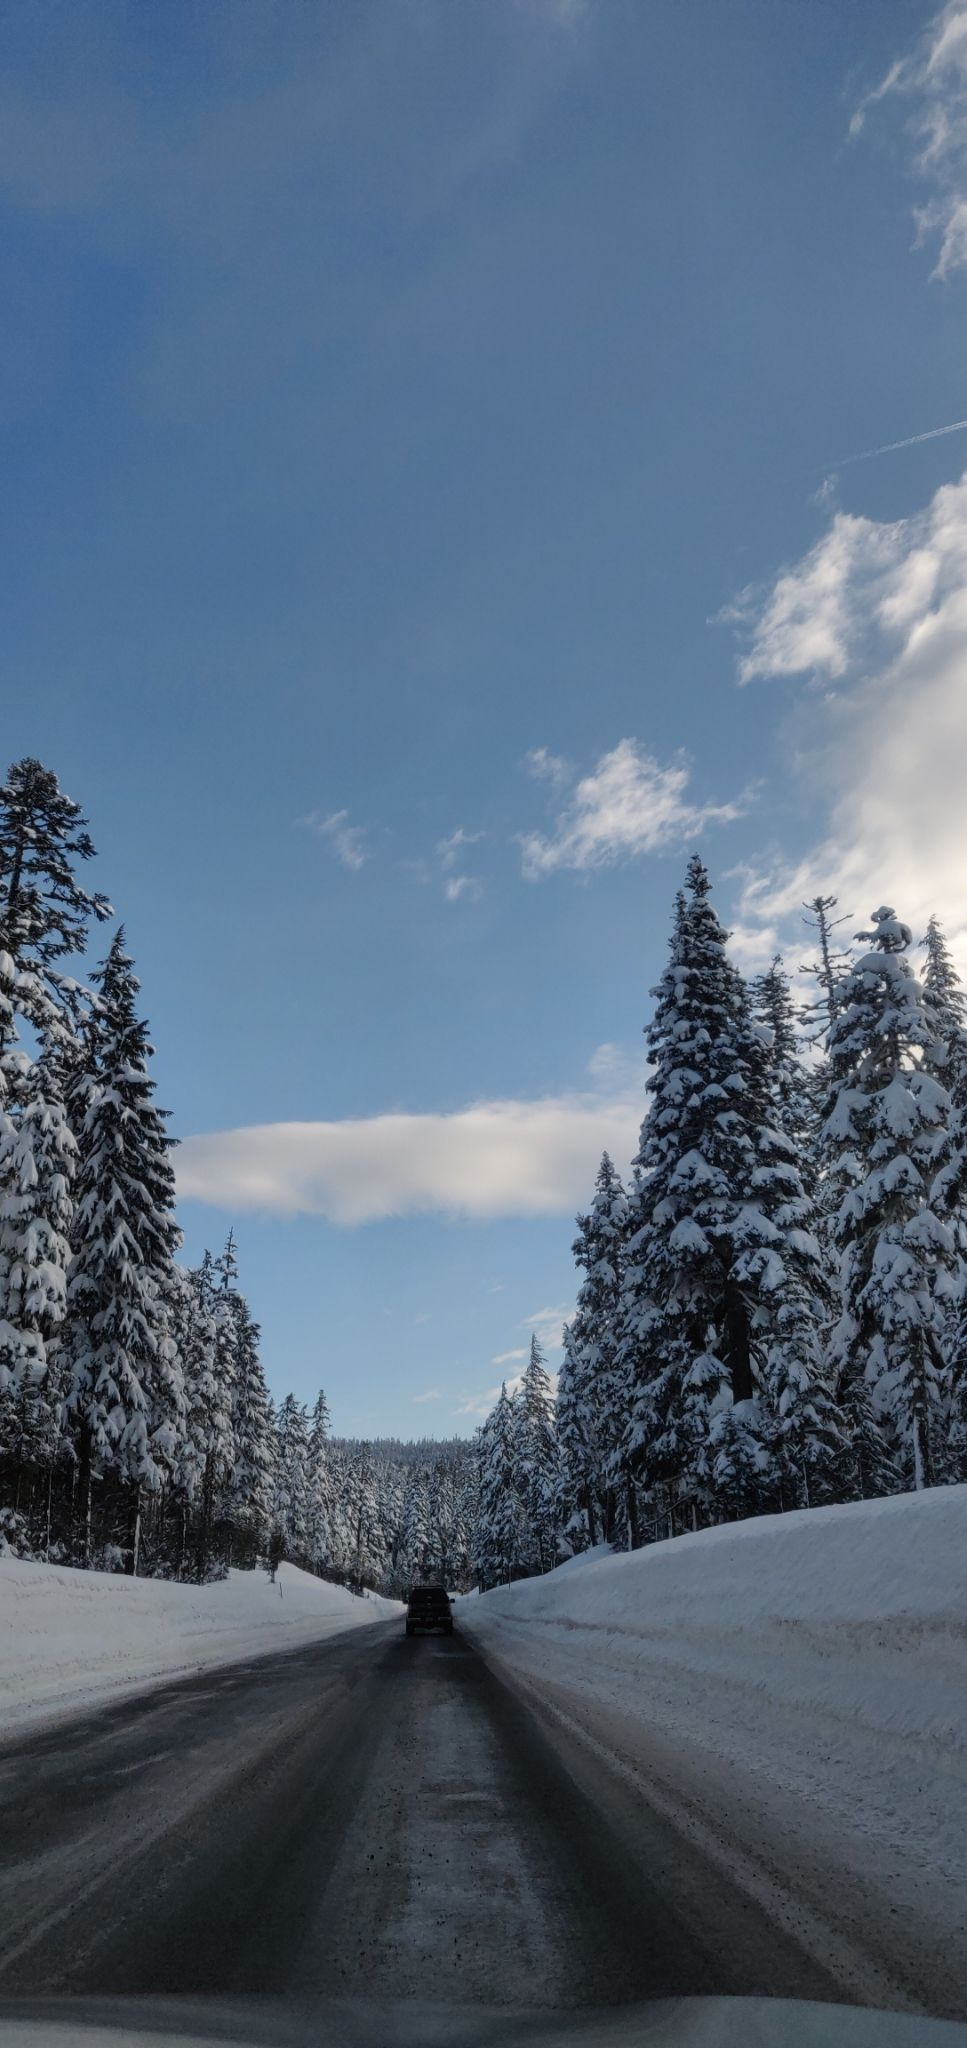 Photo of Mount Hood National Forest By Devi Archana Das